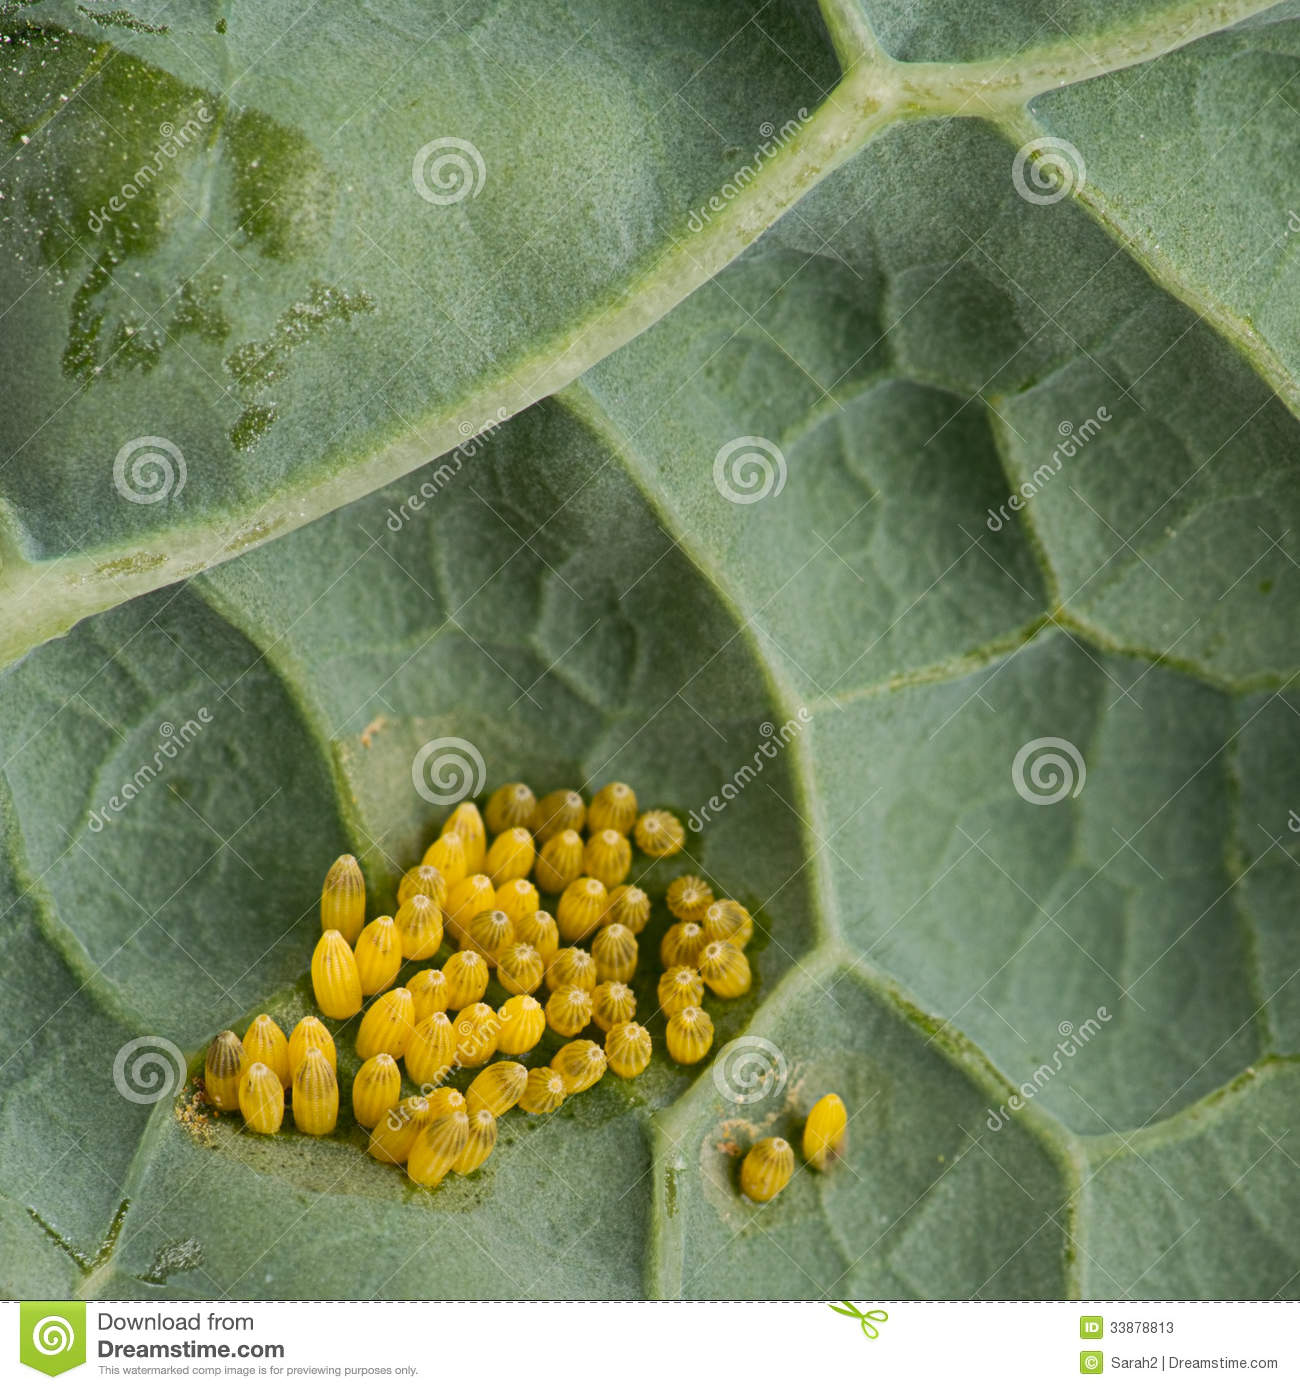 assesment of pesticide use on cabbage Insecticide use in cabbage pest management in the cameron highlands, malaysia  since the vegetable production in cameron highlands has been impeded by an over-reliance on the use of pesticide .